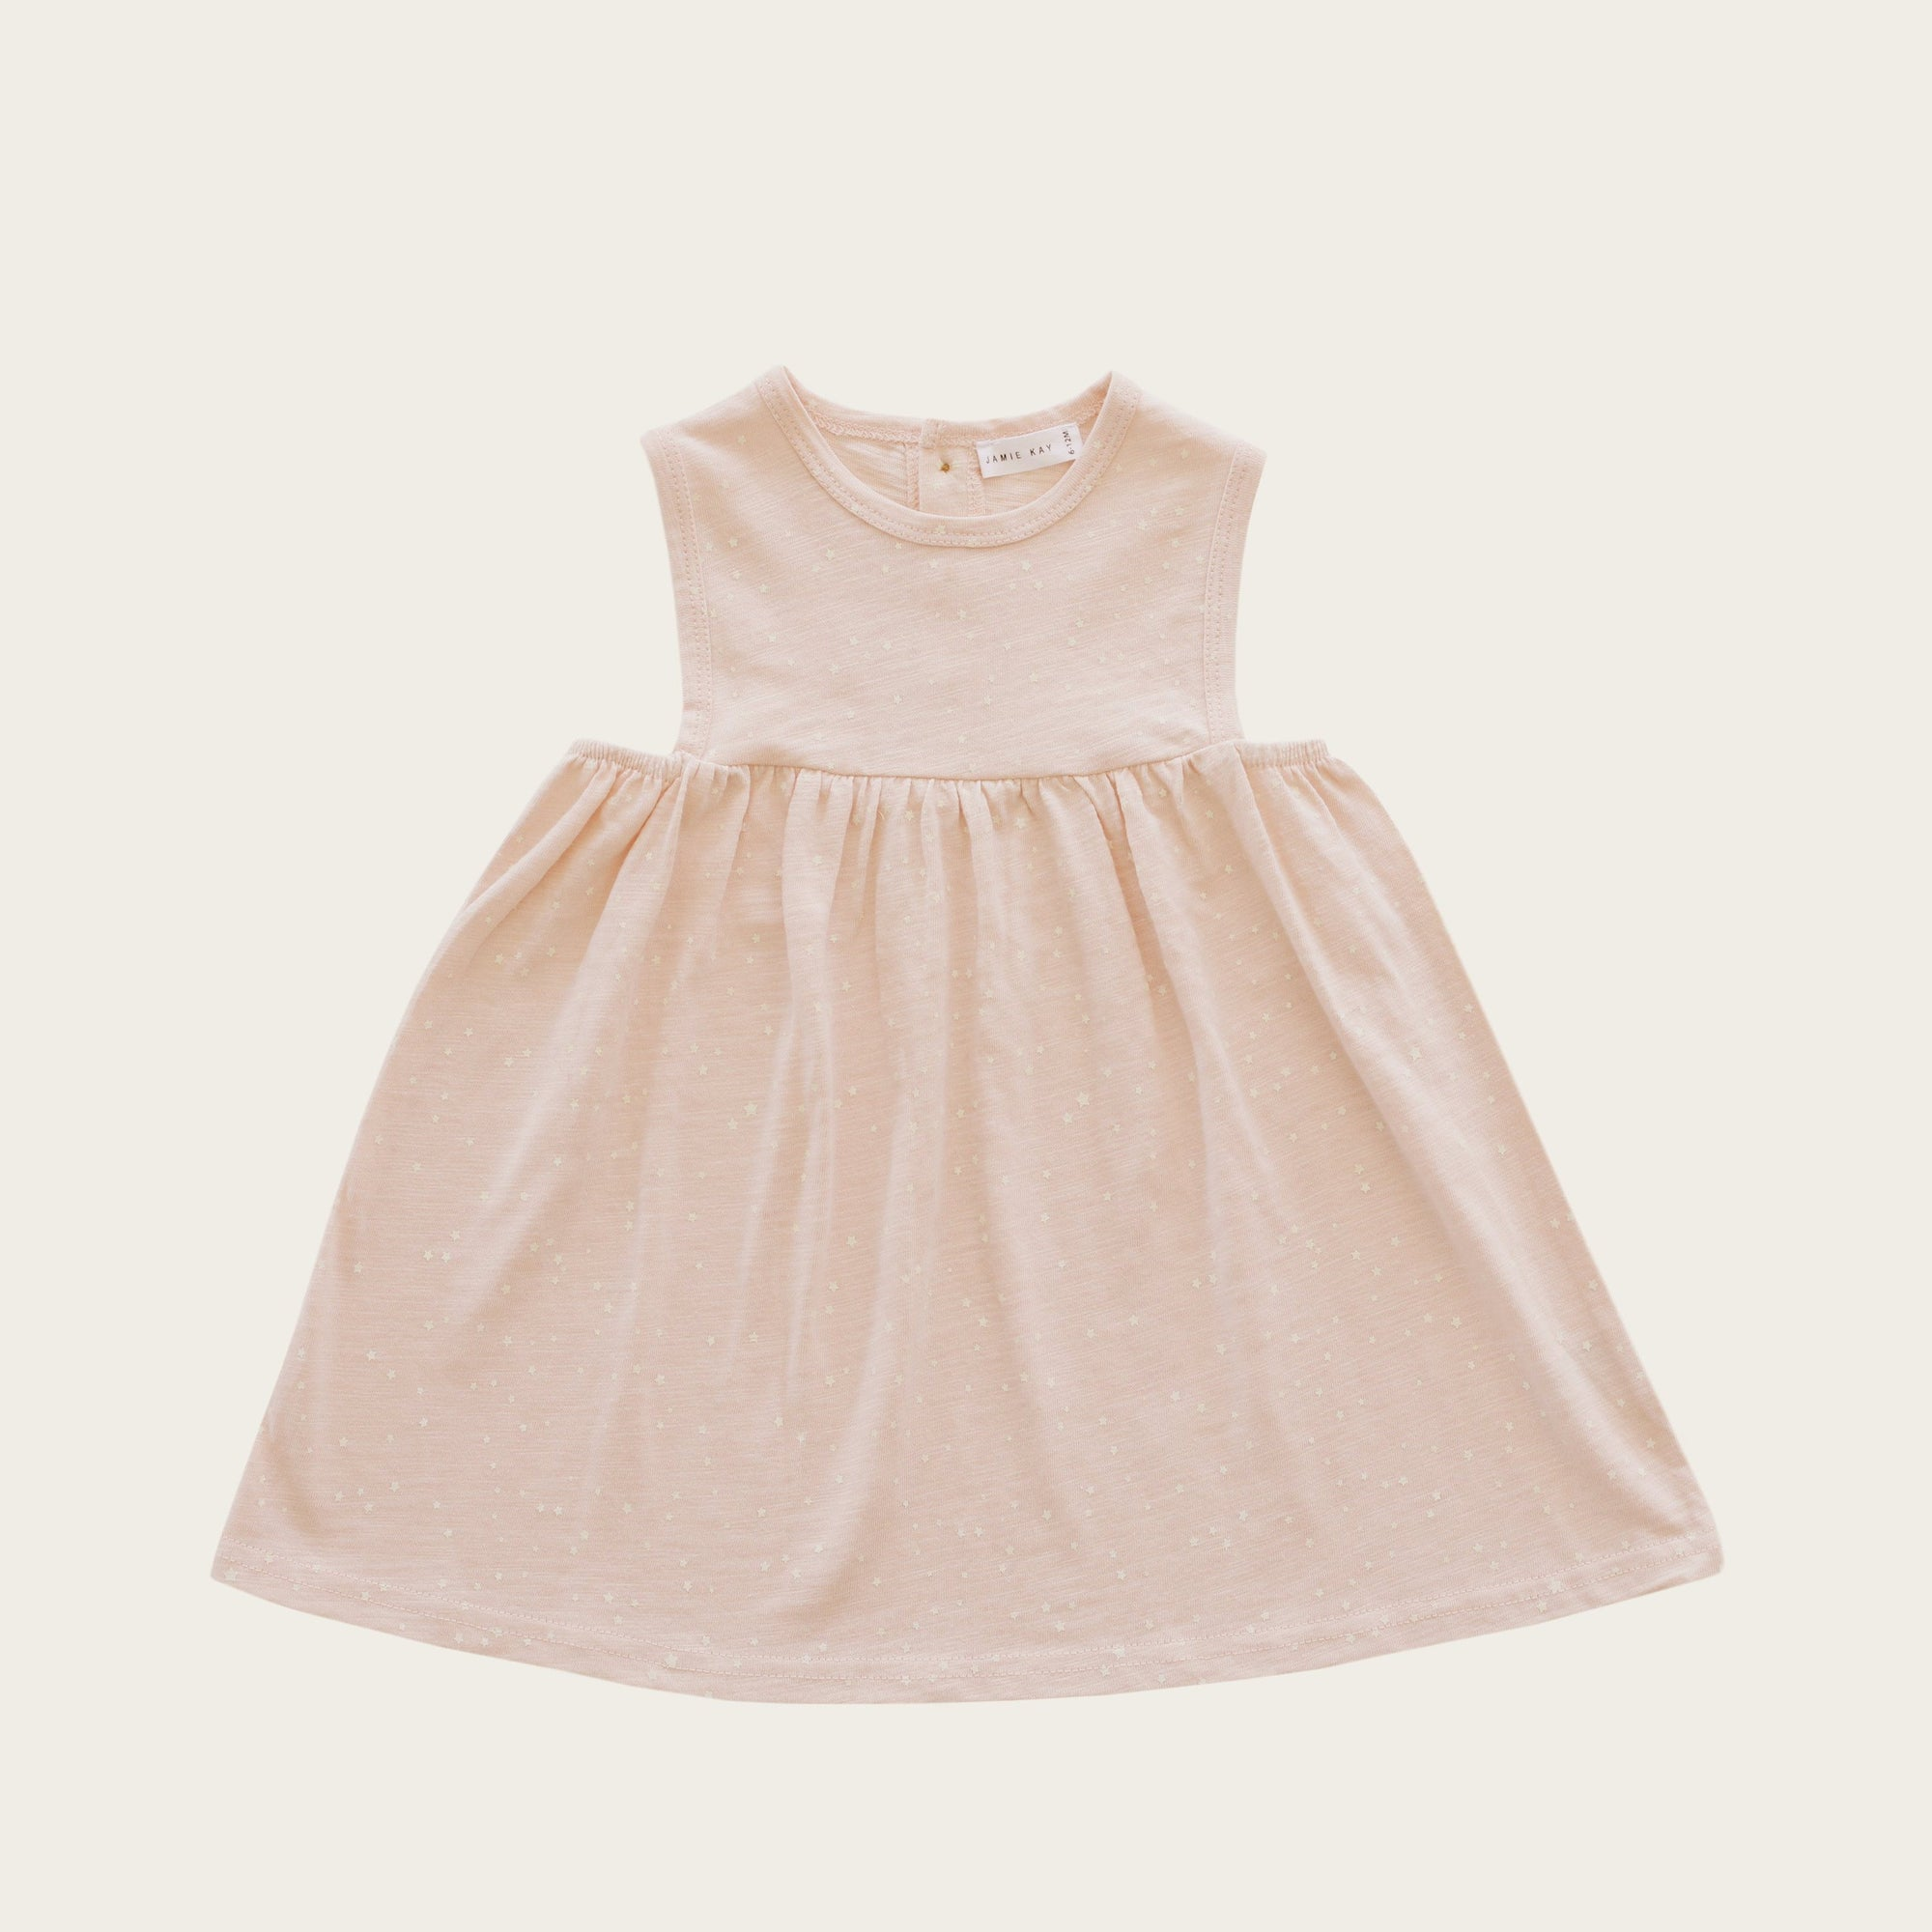 Lucie Dress (Tiny Stars)